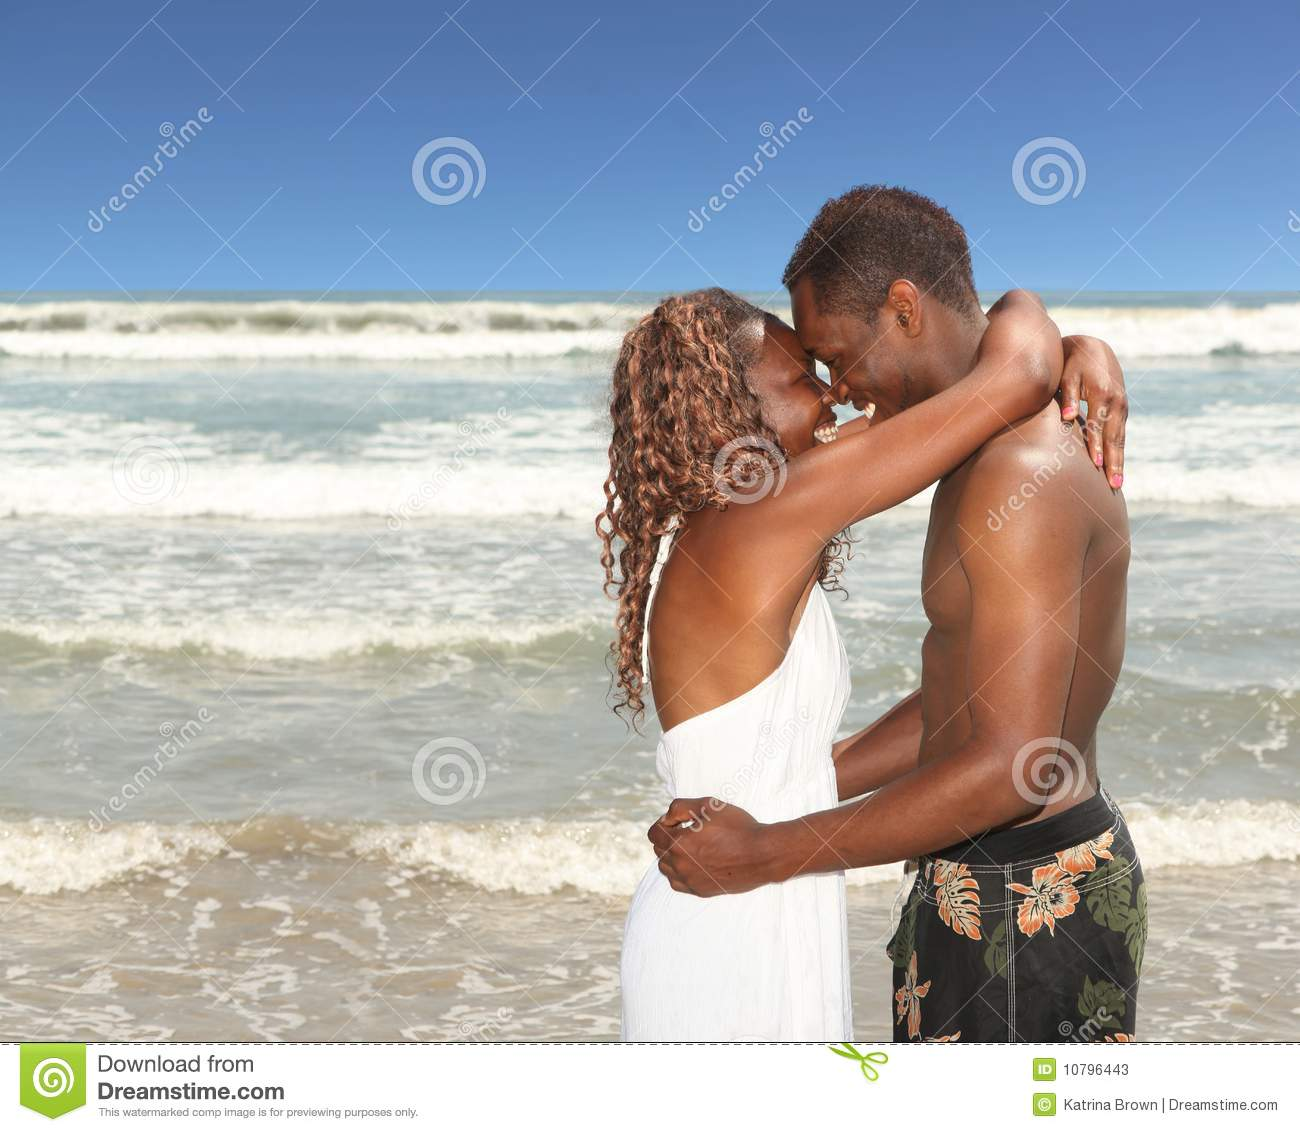 Couple At The Beach Stock Image Image Of Caucasian: African American Couple On The Beach Happy And In Stock